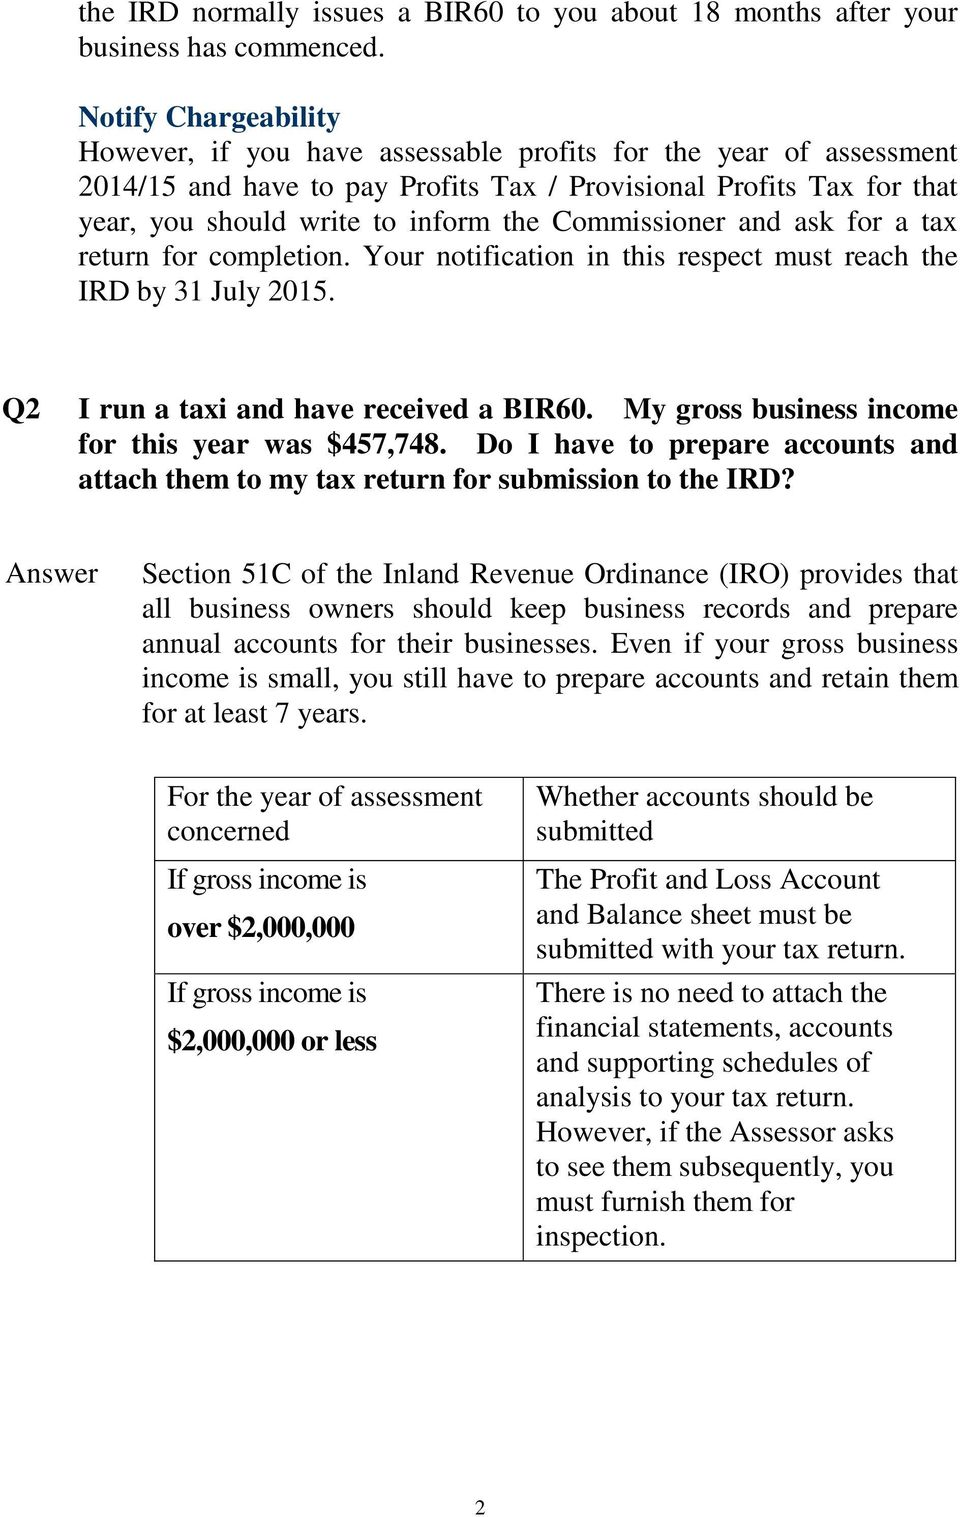 Commissioner and ask for a tax return for completion. Your notification in this respect must reach the IRD by 31 July 2015. Q2 I run a taxi and have received a BIR60.